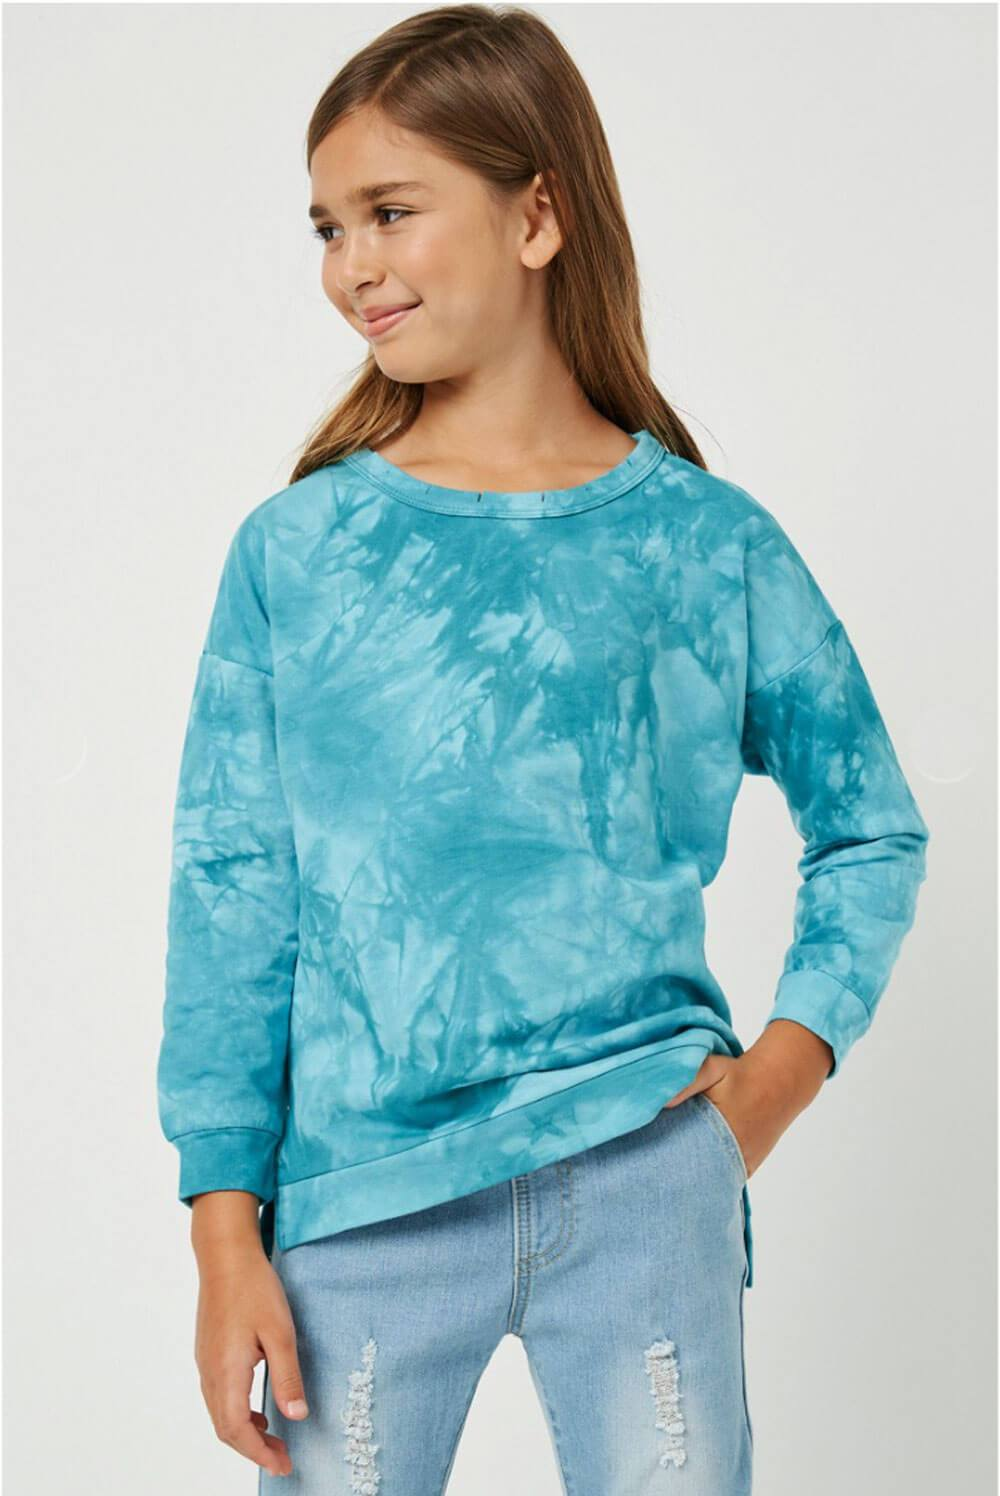 Girls Distressed Crew Neck Tie Dyed Sweatshirt teal front MILK MONEY Kids